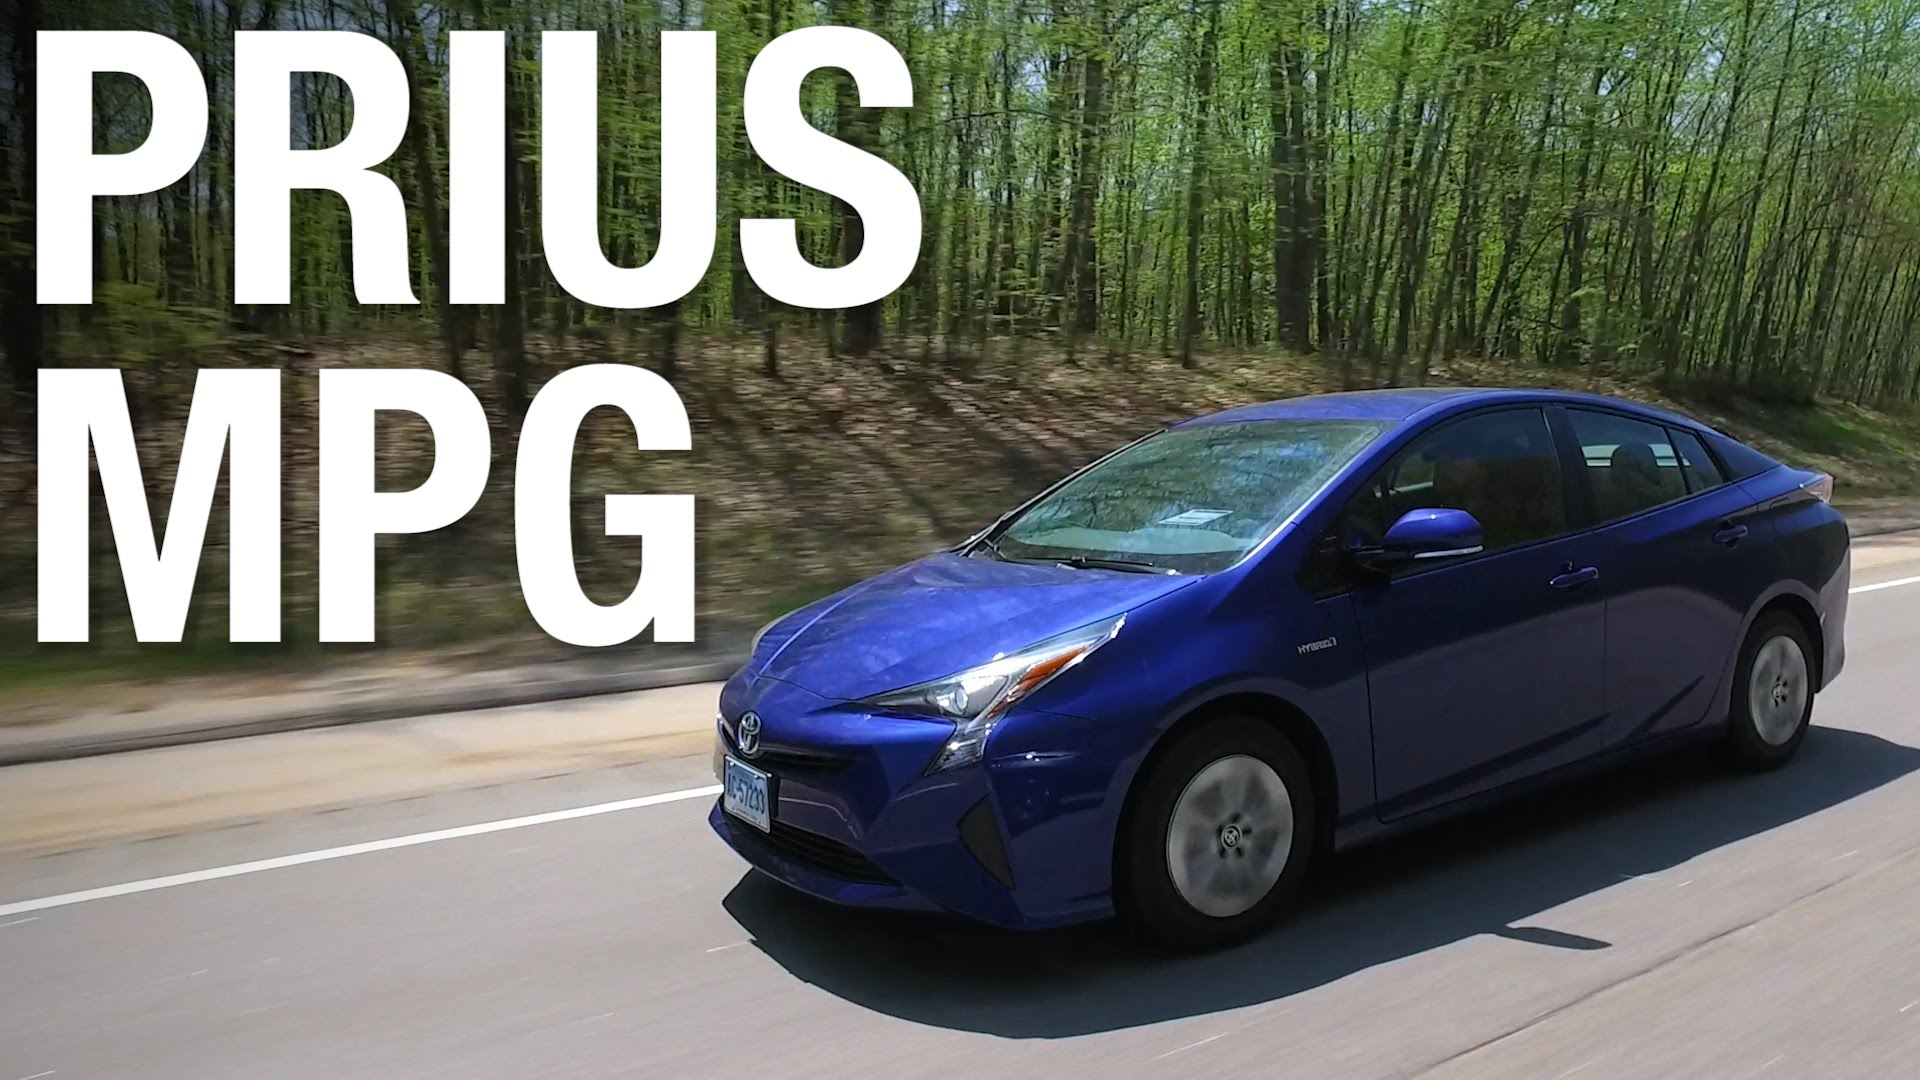 2016 Toyota Prius Is The Most Fuel Efficient Car And Here Is The ...